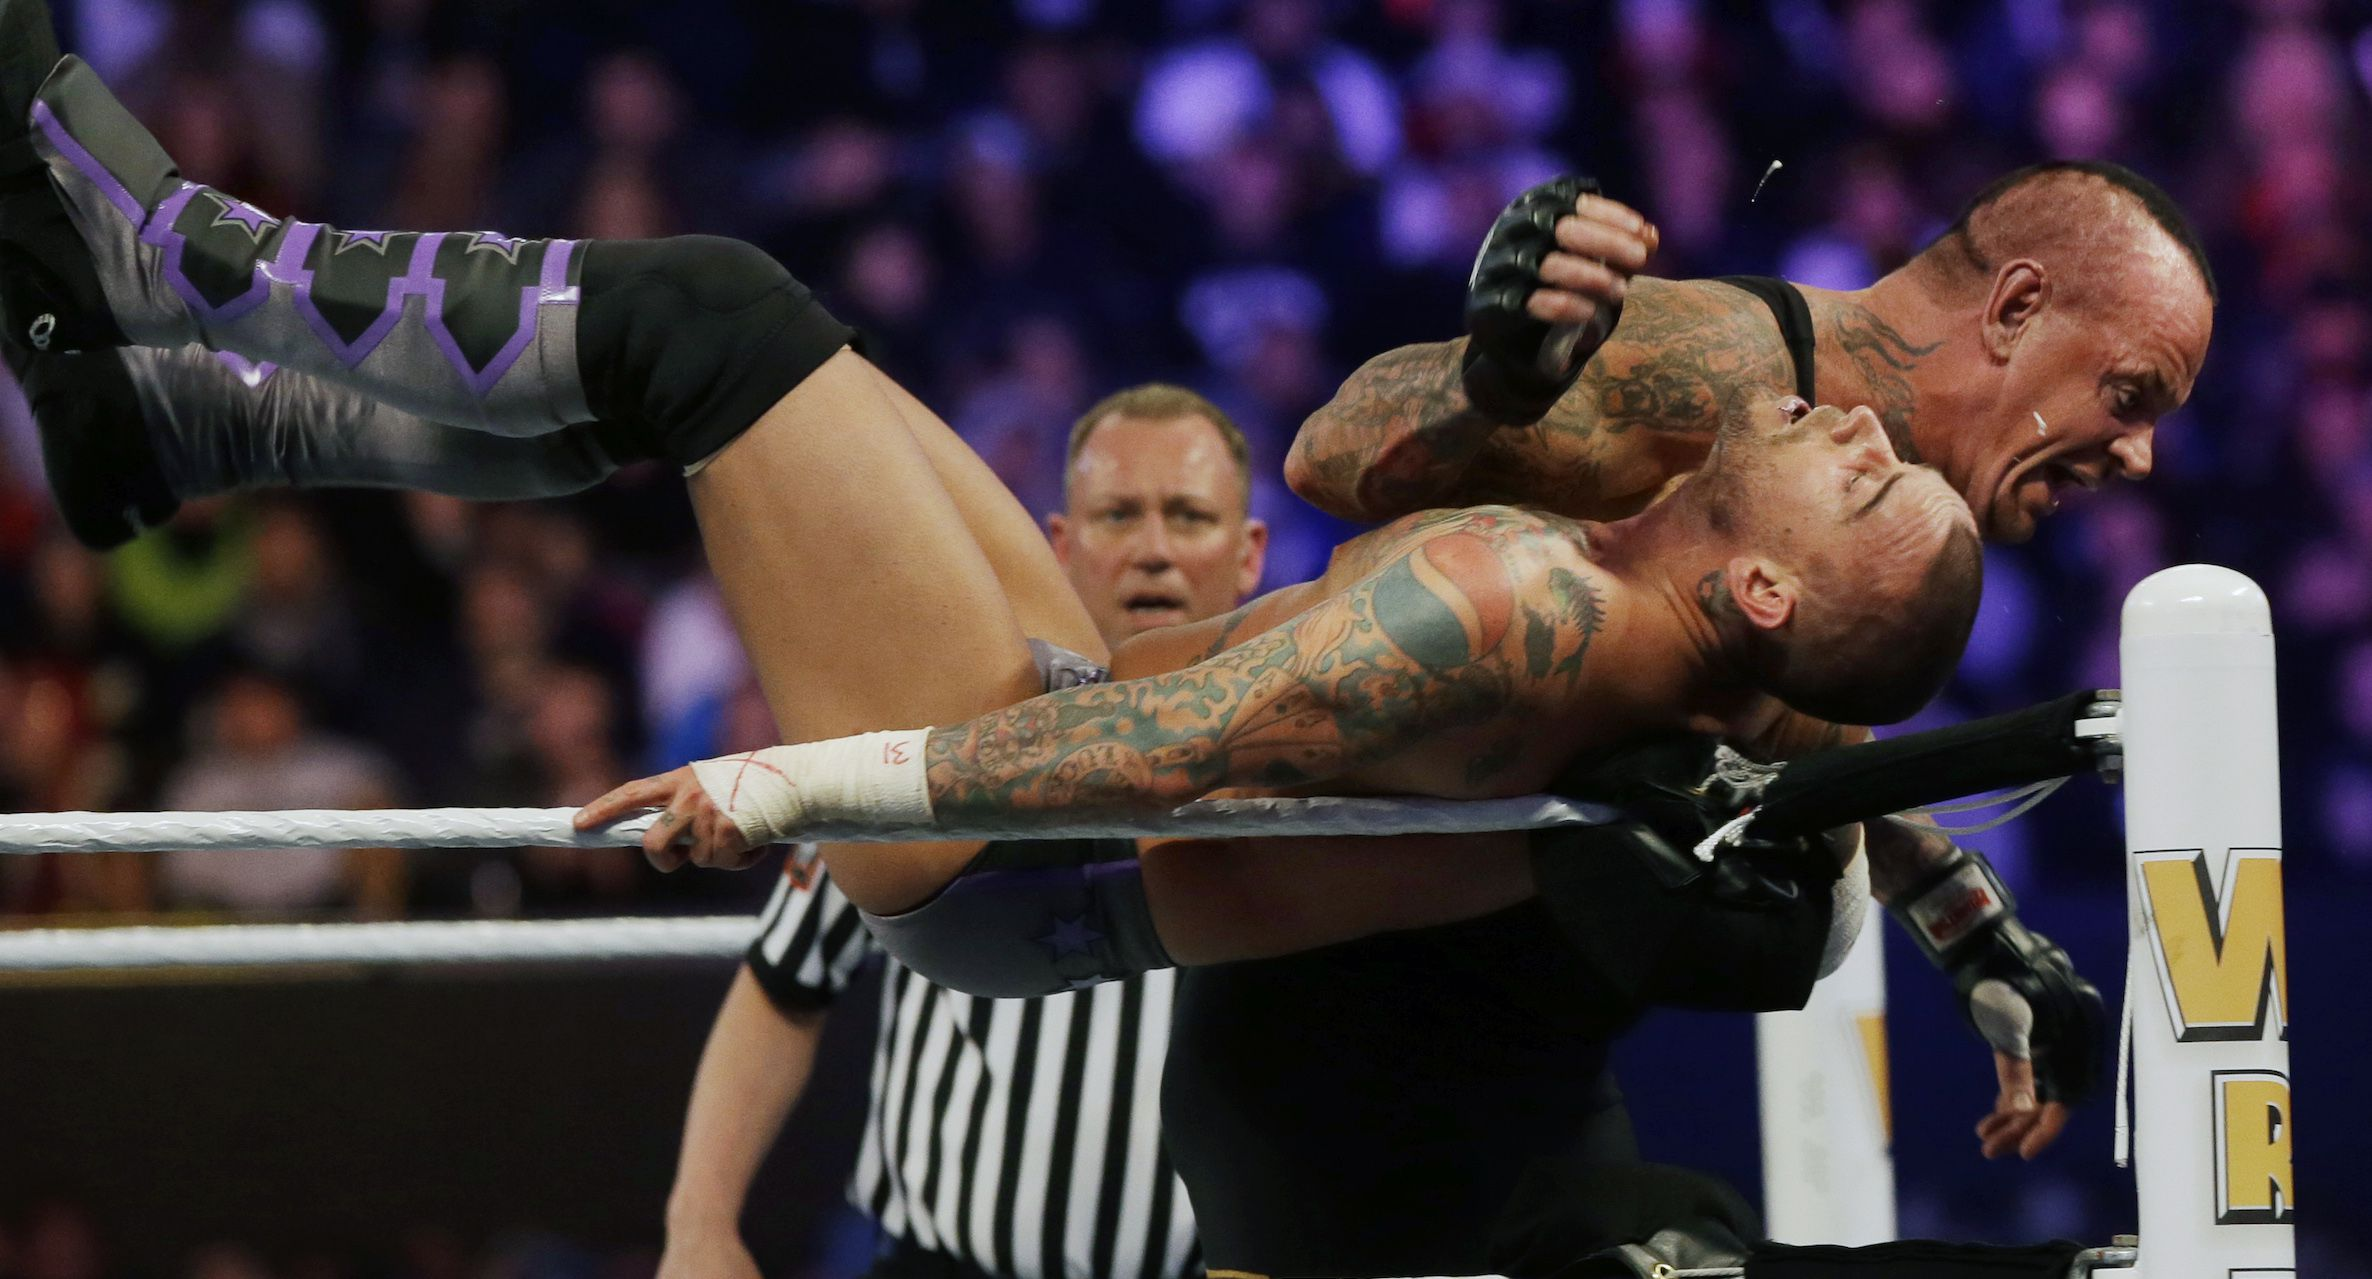 Can WWE wrestlers really fight? - Quora